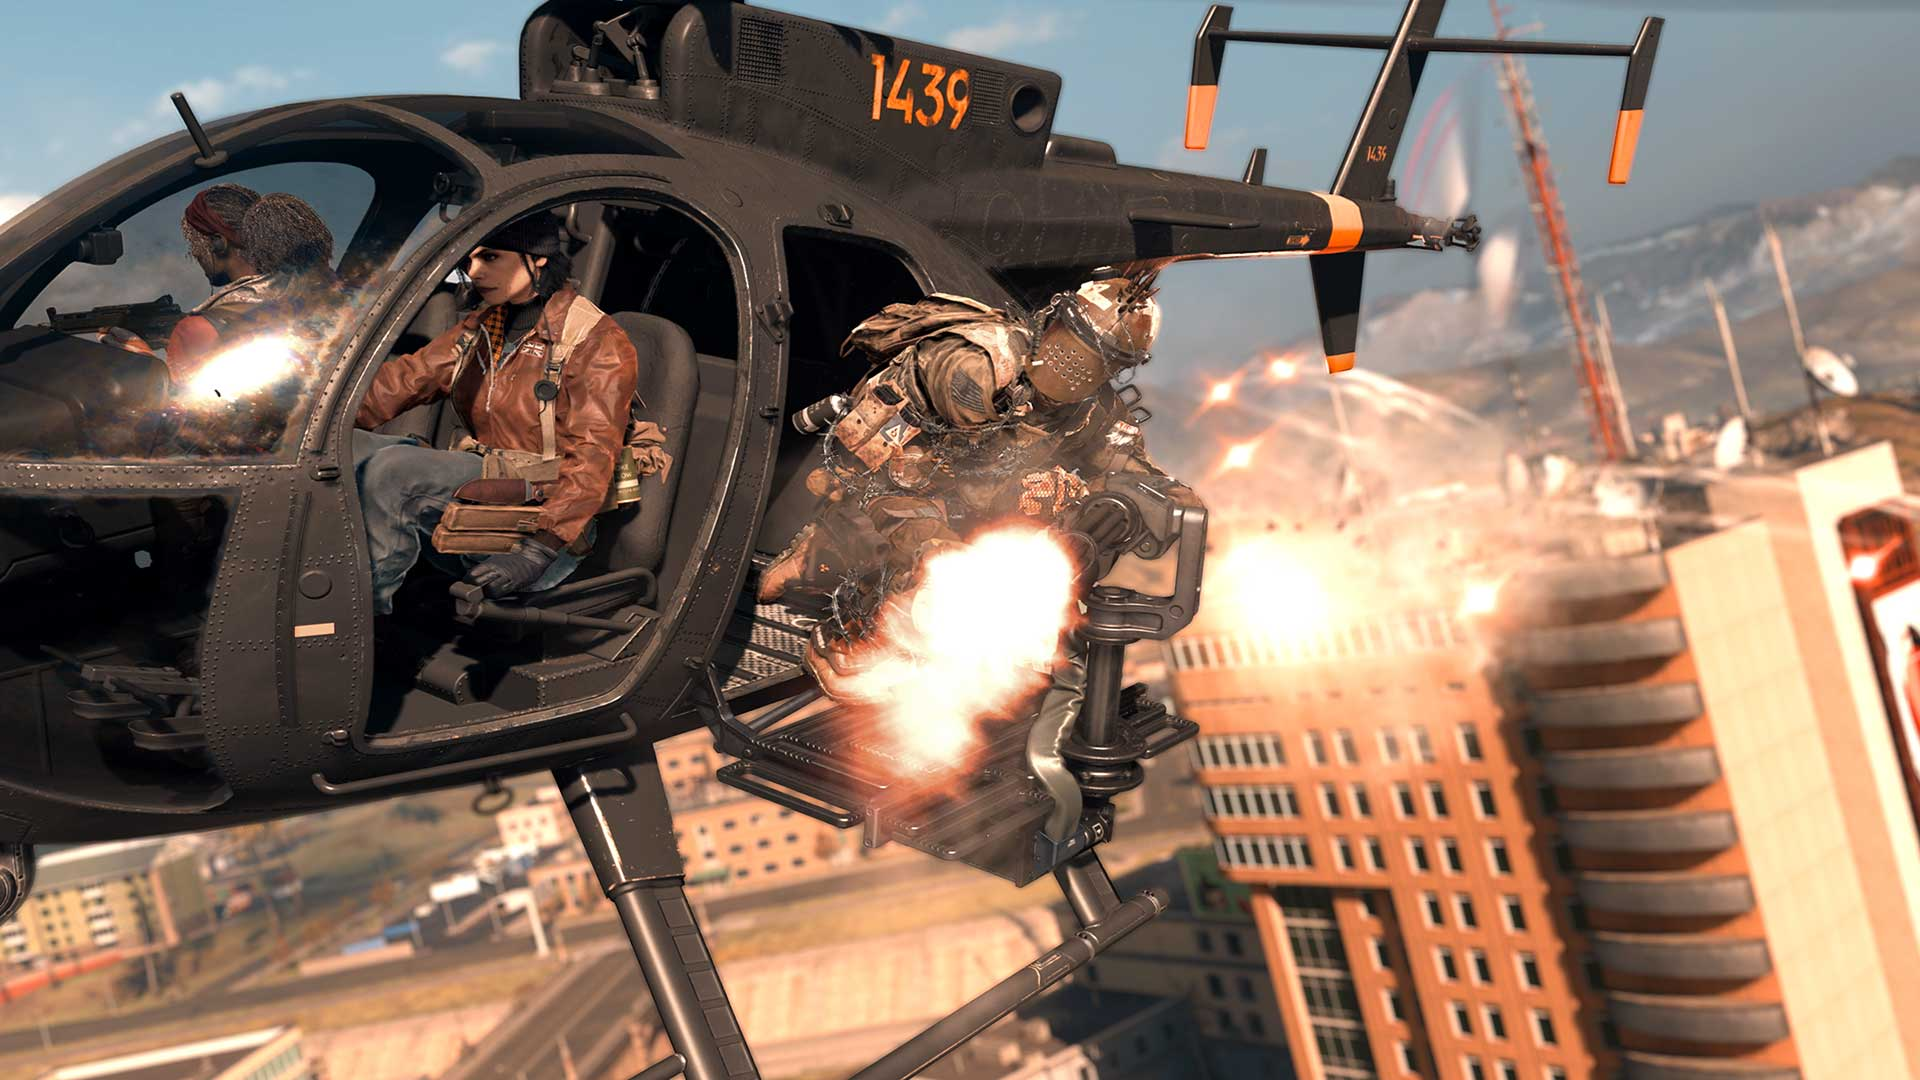 John McClane Gets Stuck In Helicopter Blades.